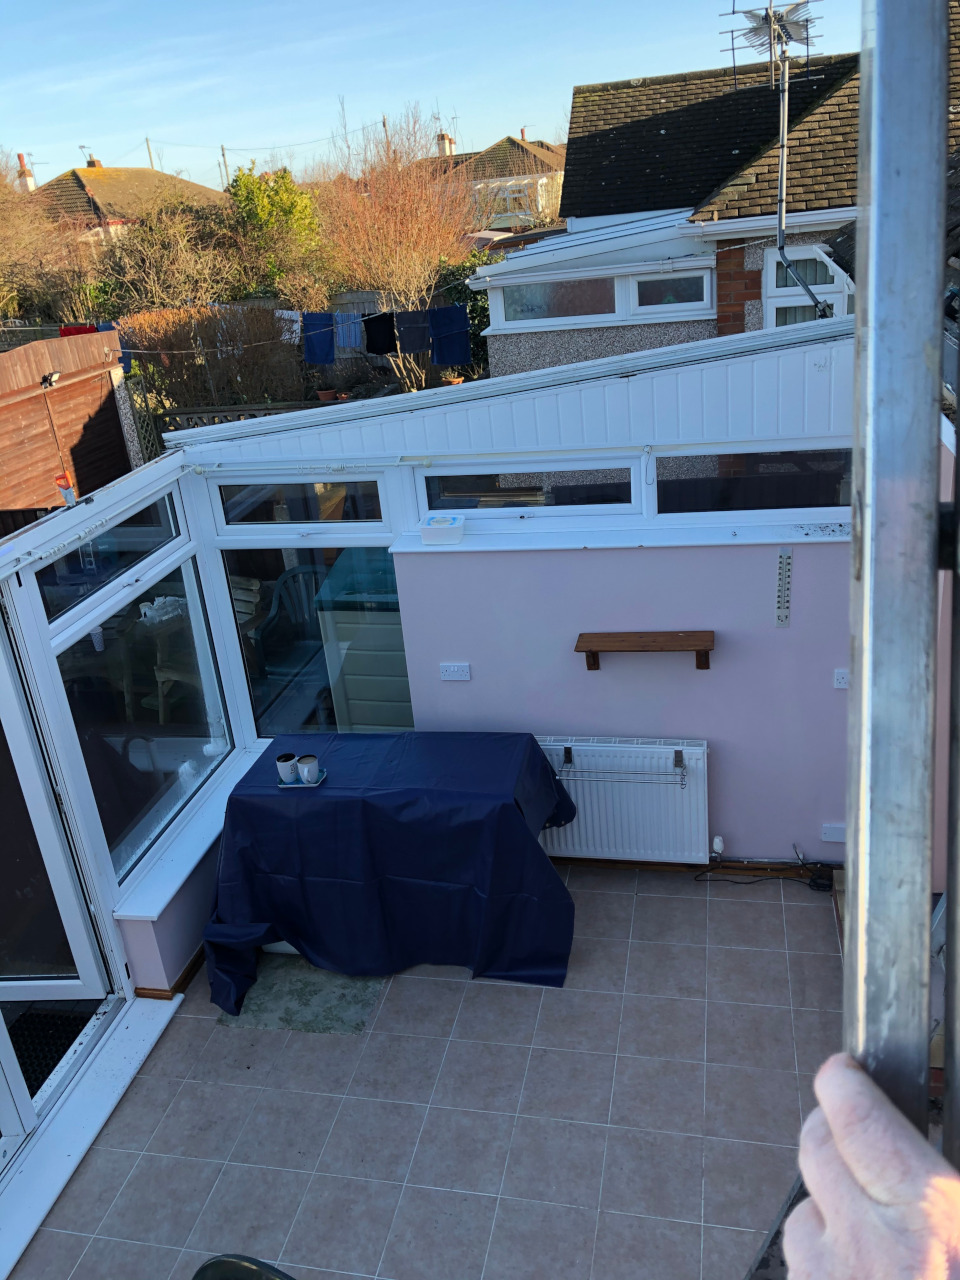 Conservatory new thermal insulation.